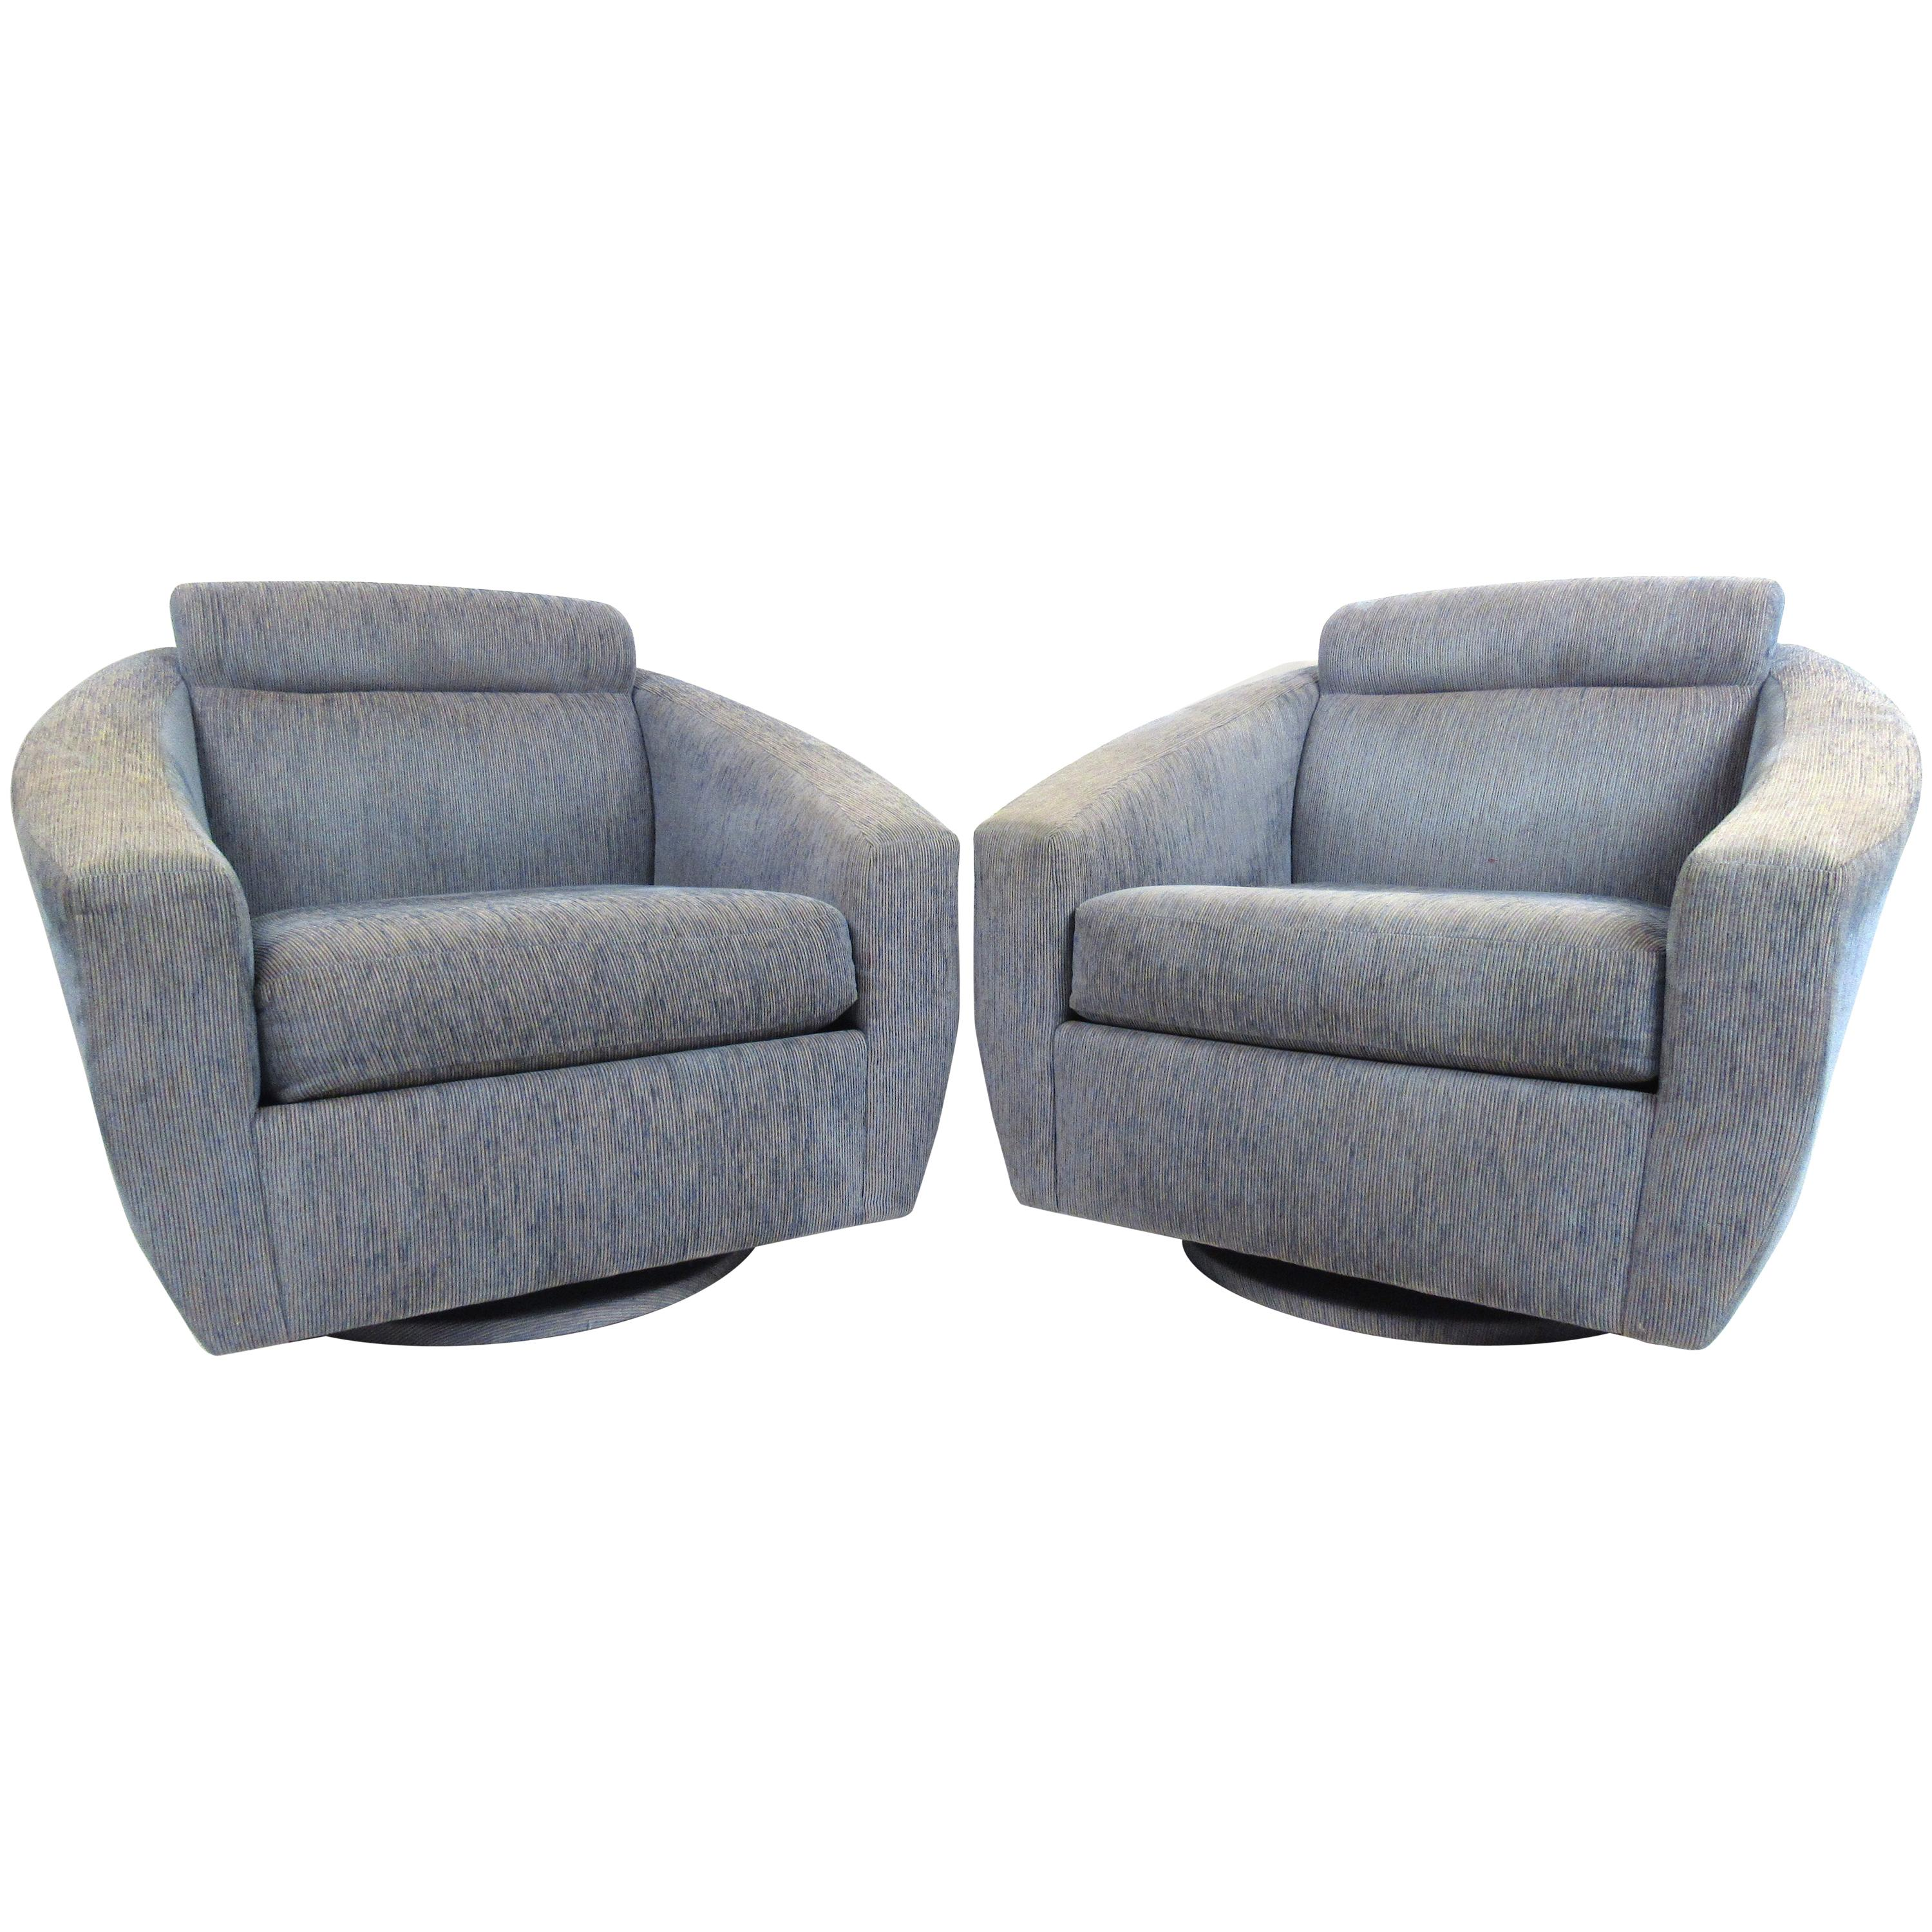 Pair of Oversized Modern Swivel Lounge Chairs